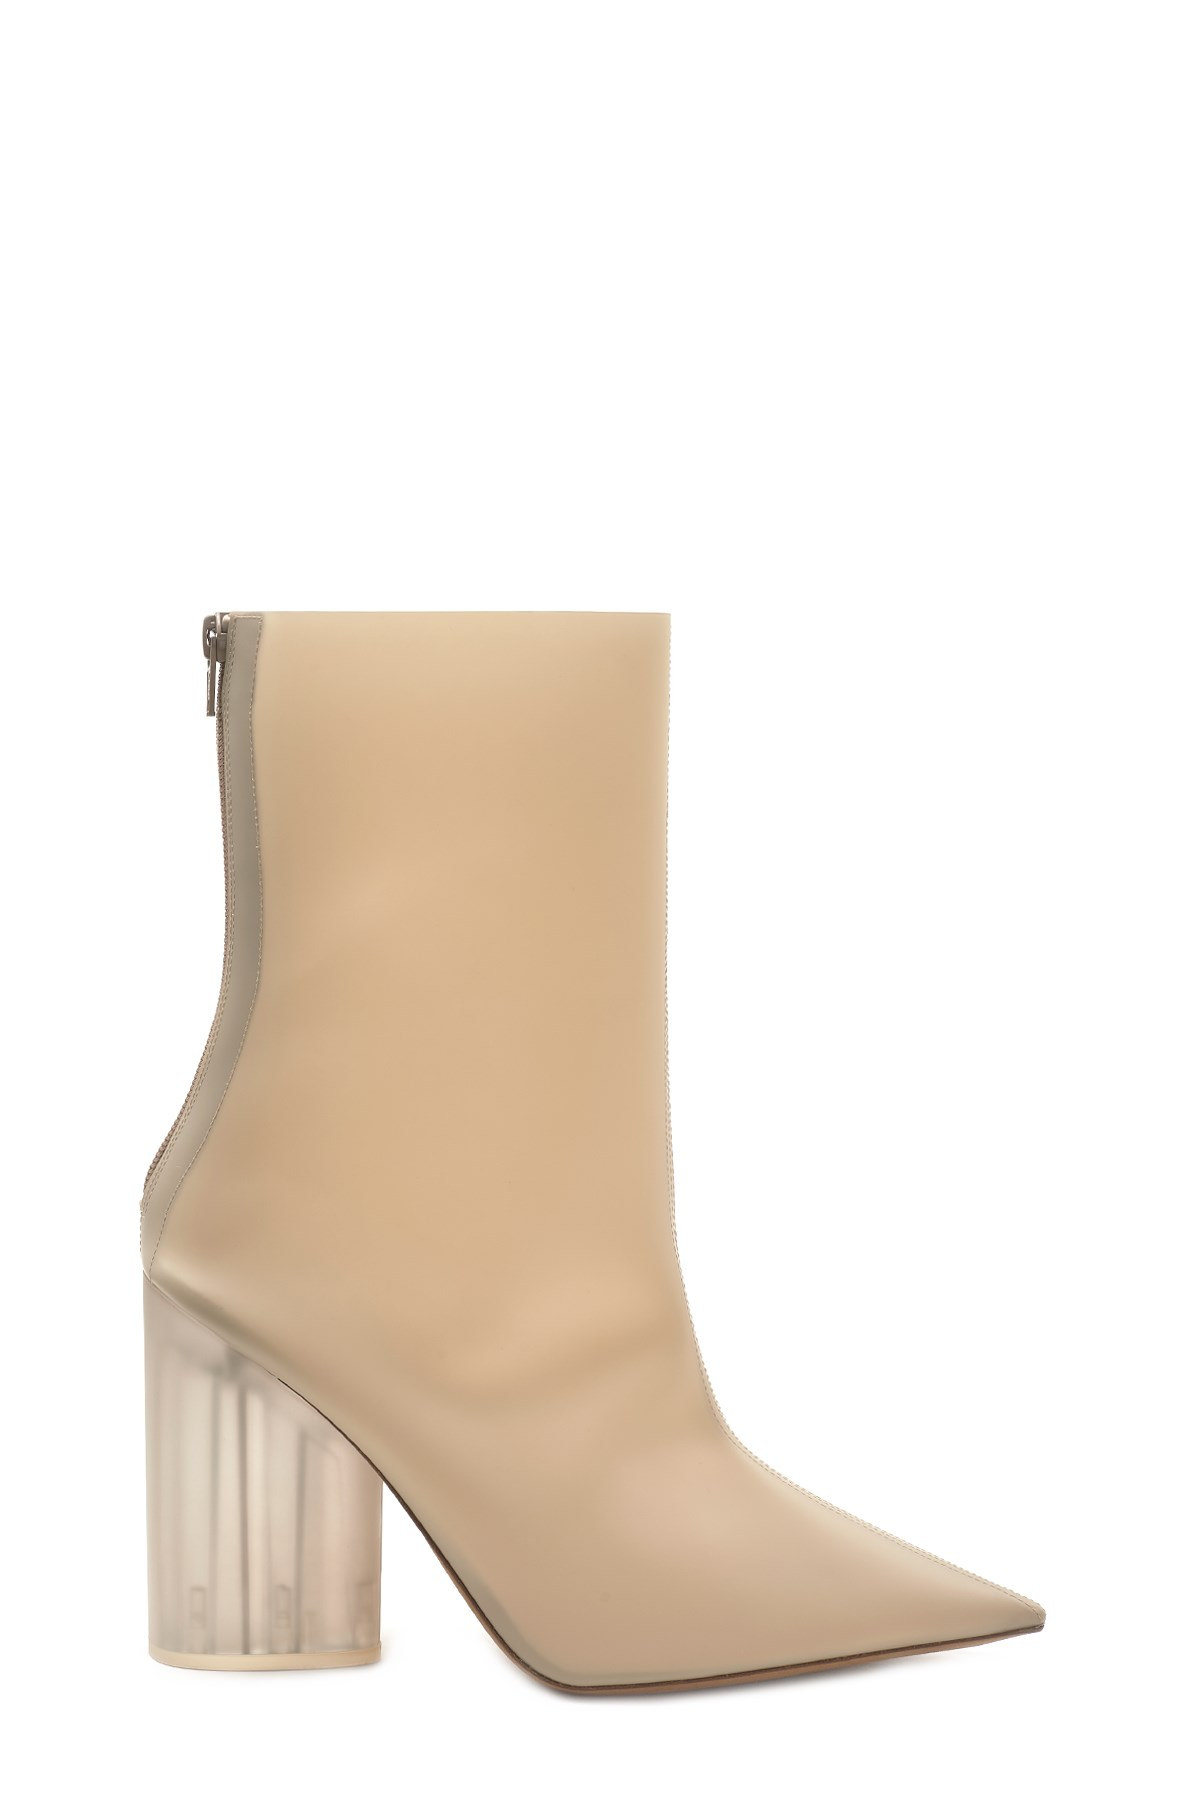 0568f6f777 yeezy semi opaque ankle boots available on julian-fashion.com - 57904